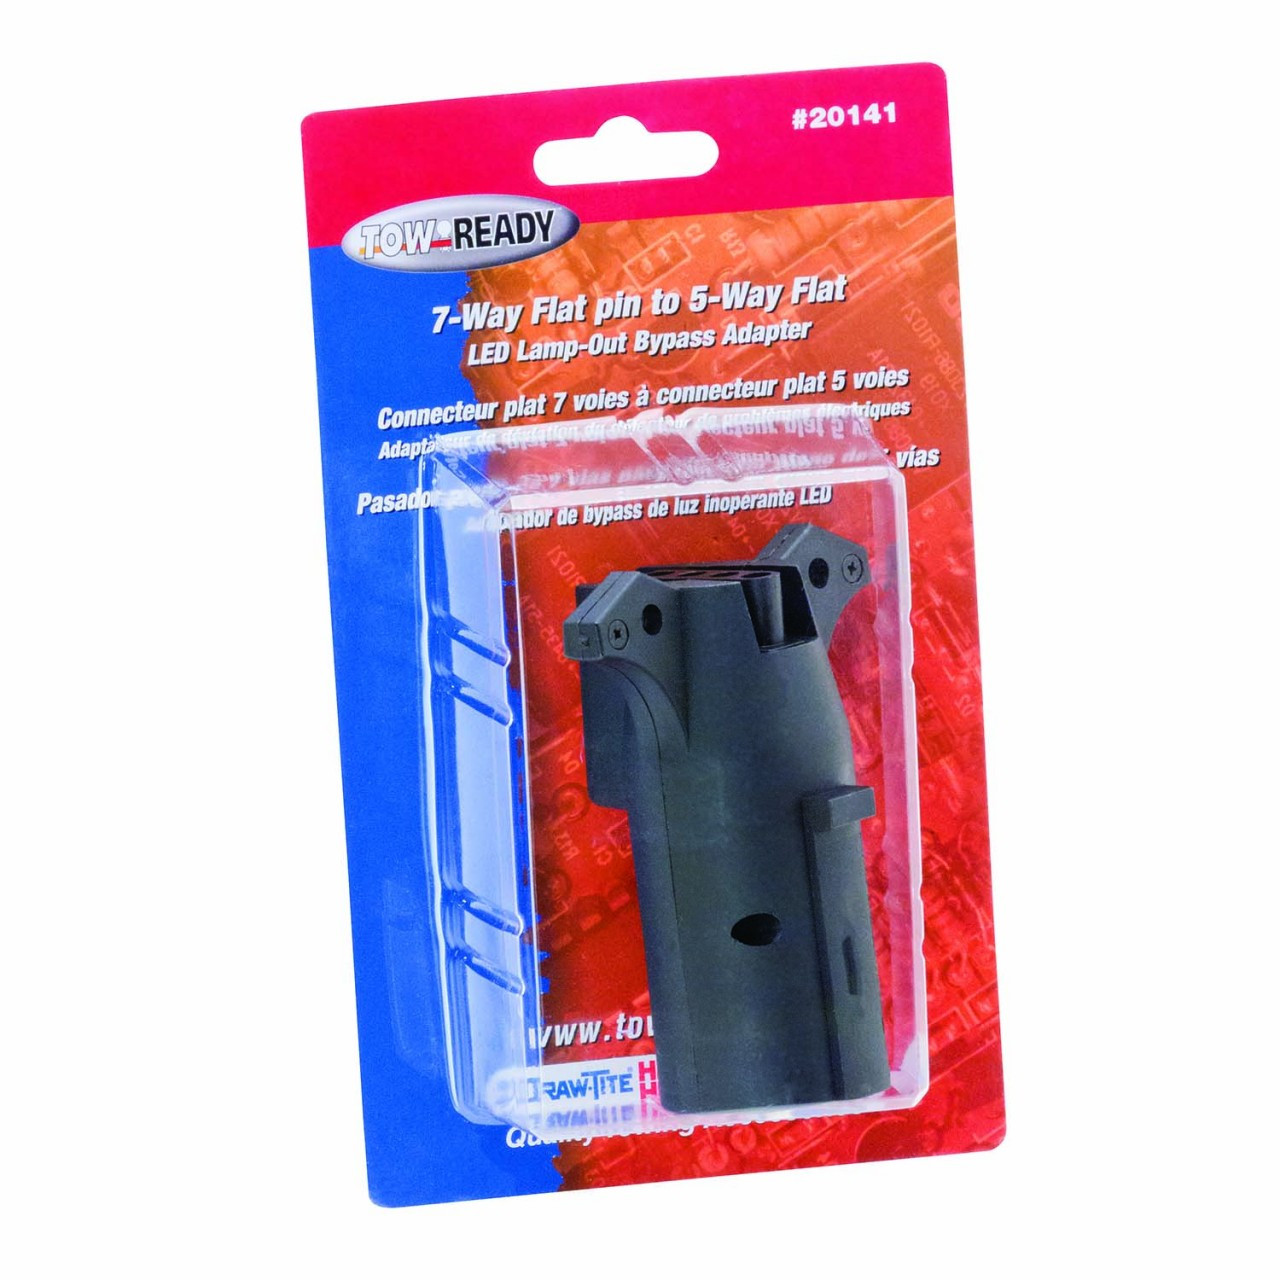 20141 --- 7-Way Flat Pin to 5-Prong Flat Adapter - Fits Vehicles with Trailer Lamp Out Sensors